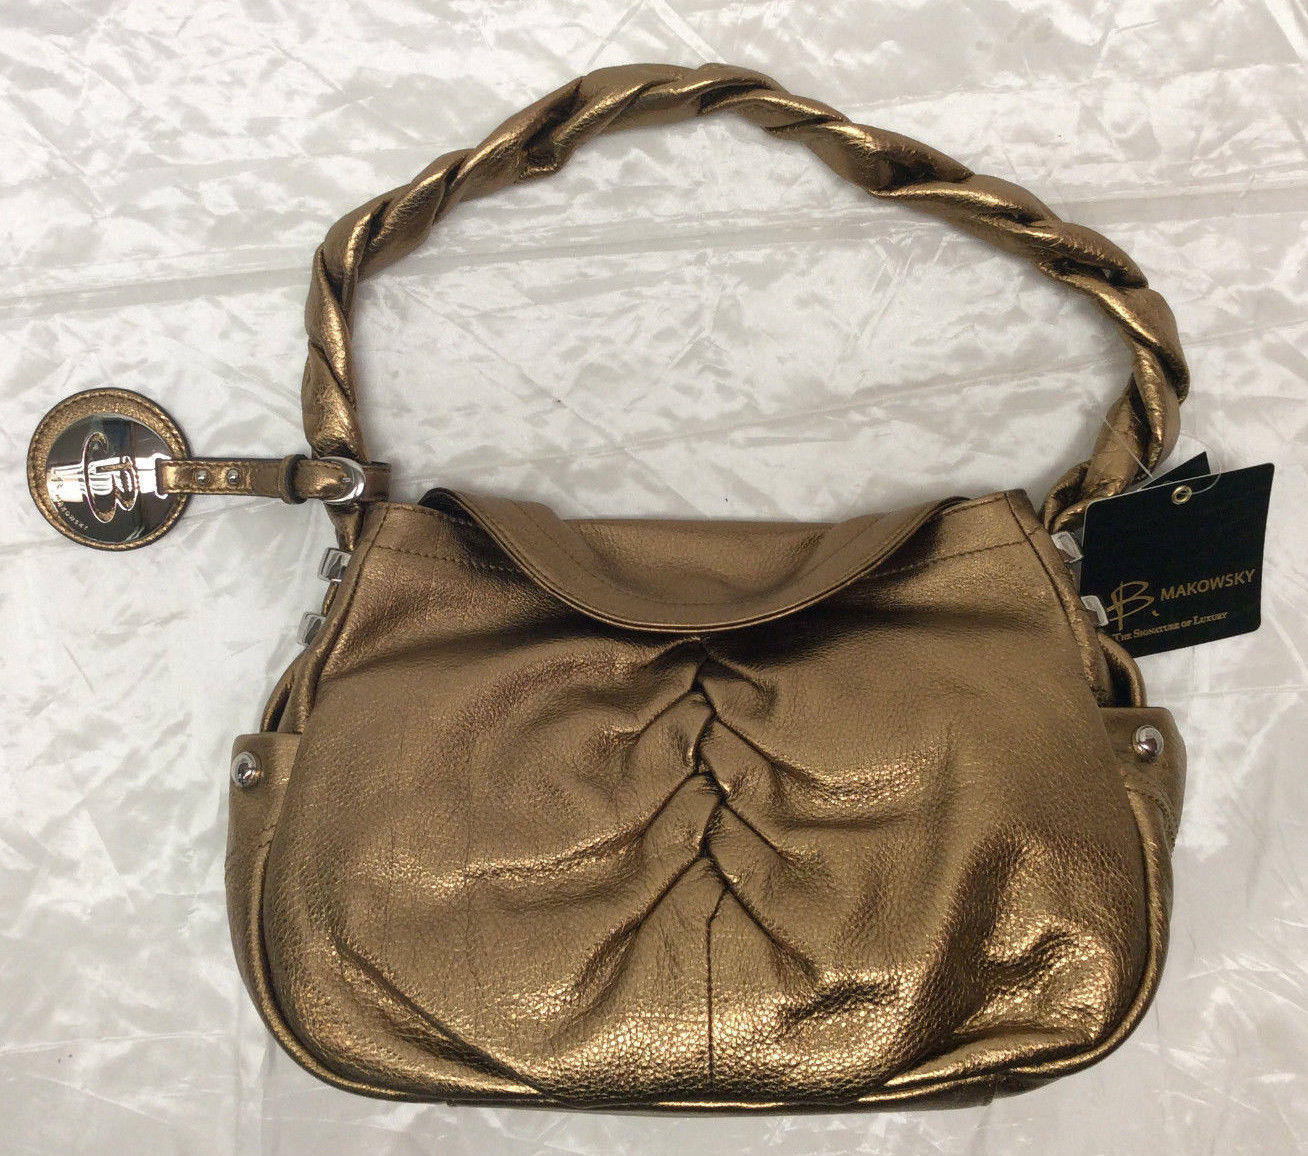 B Makowsky Ruched Glove Leather Flap Hobo With Braided Strap 127 71